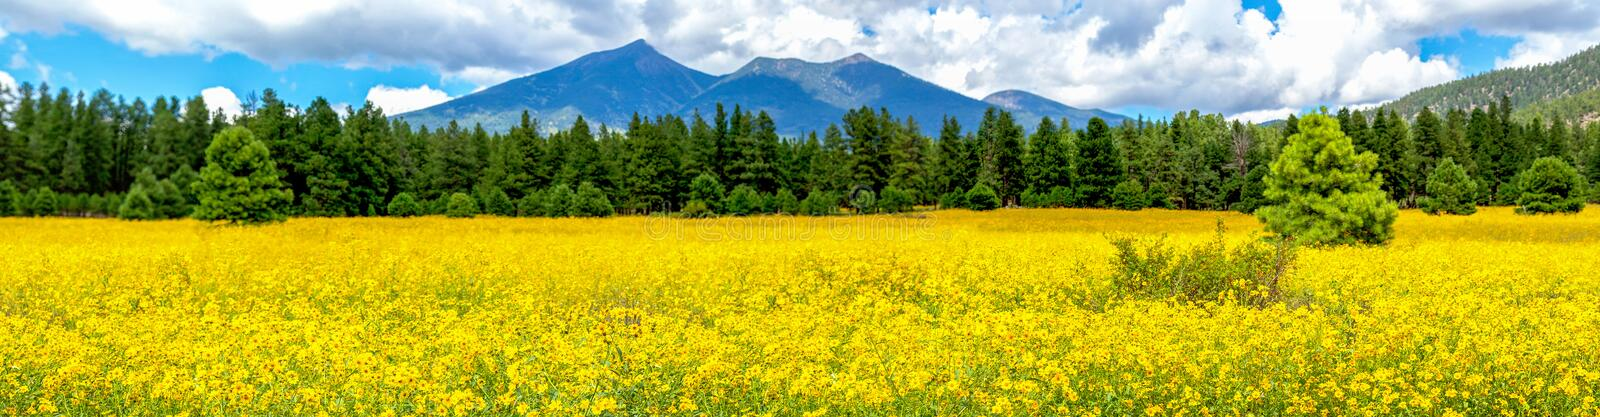 Flowers and Mountains. Mexican Sunflower Field Panorama royalty free stock photo